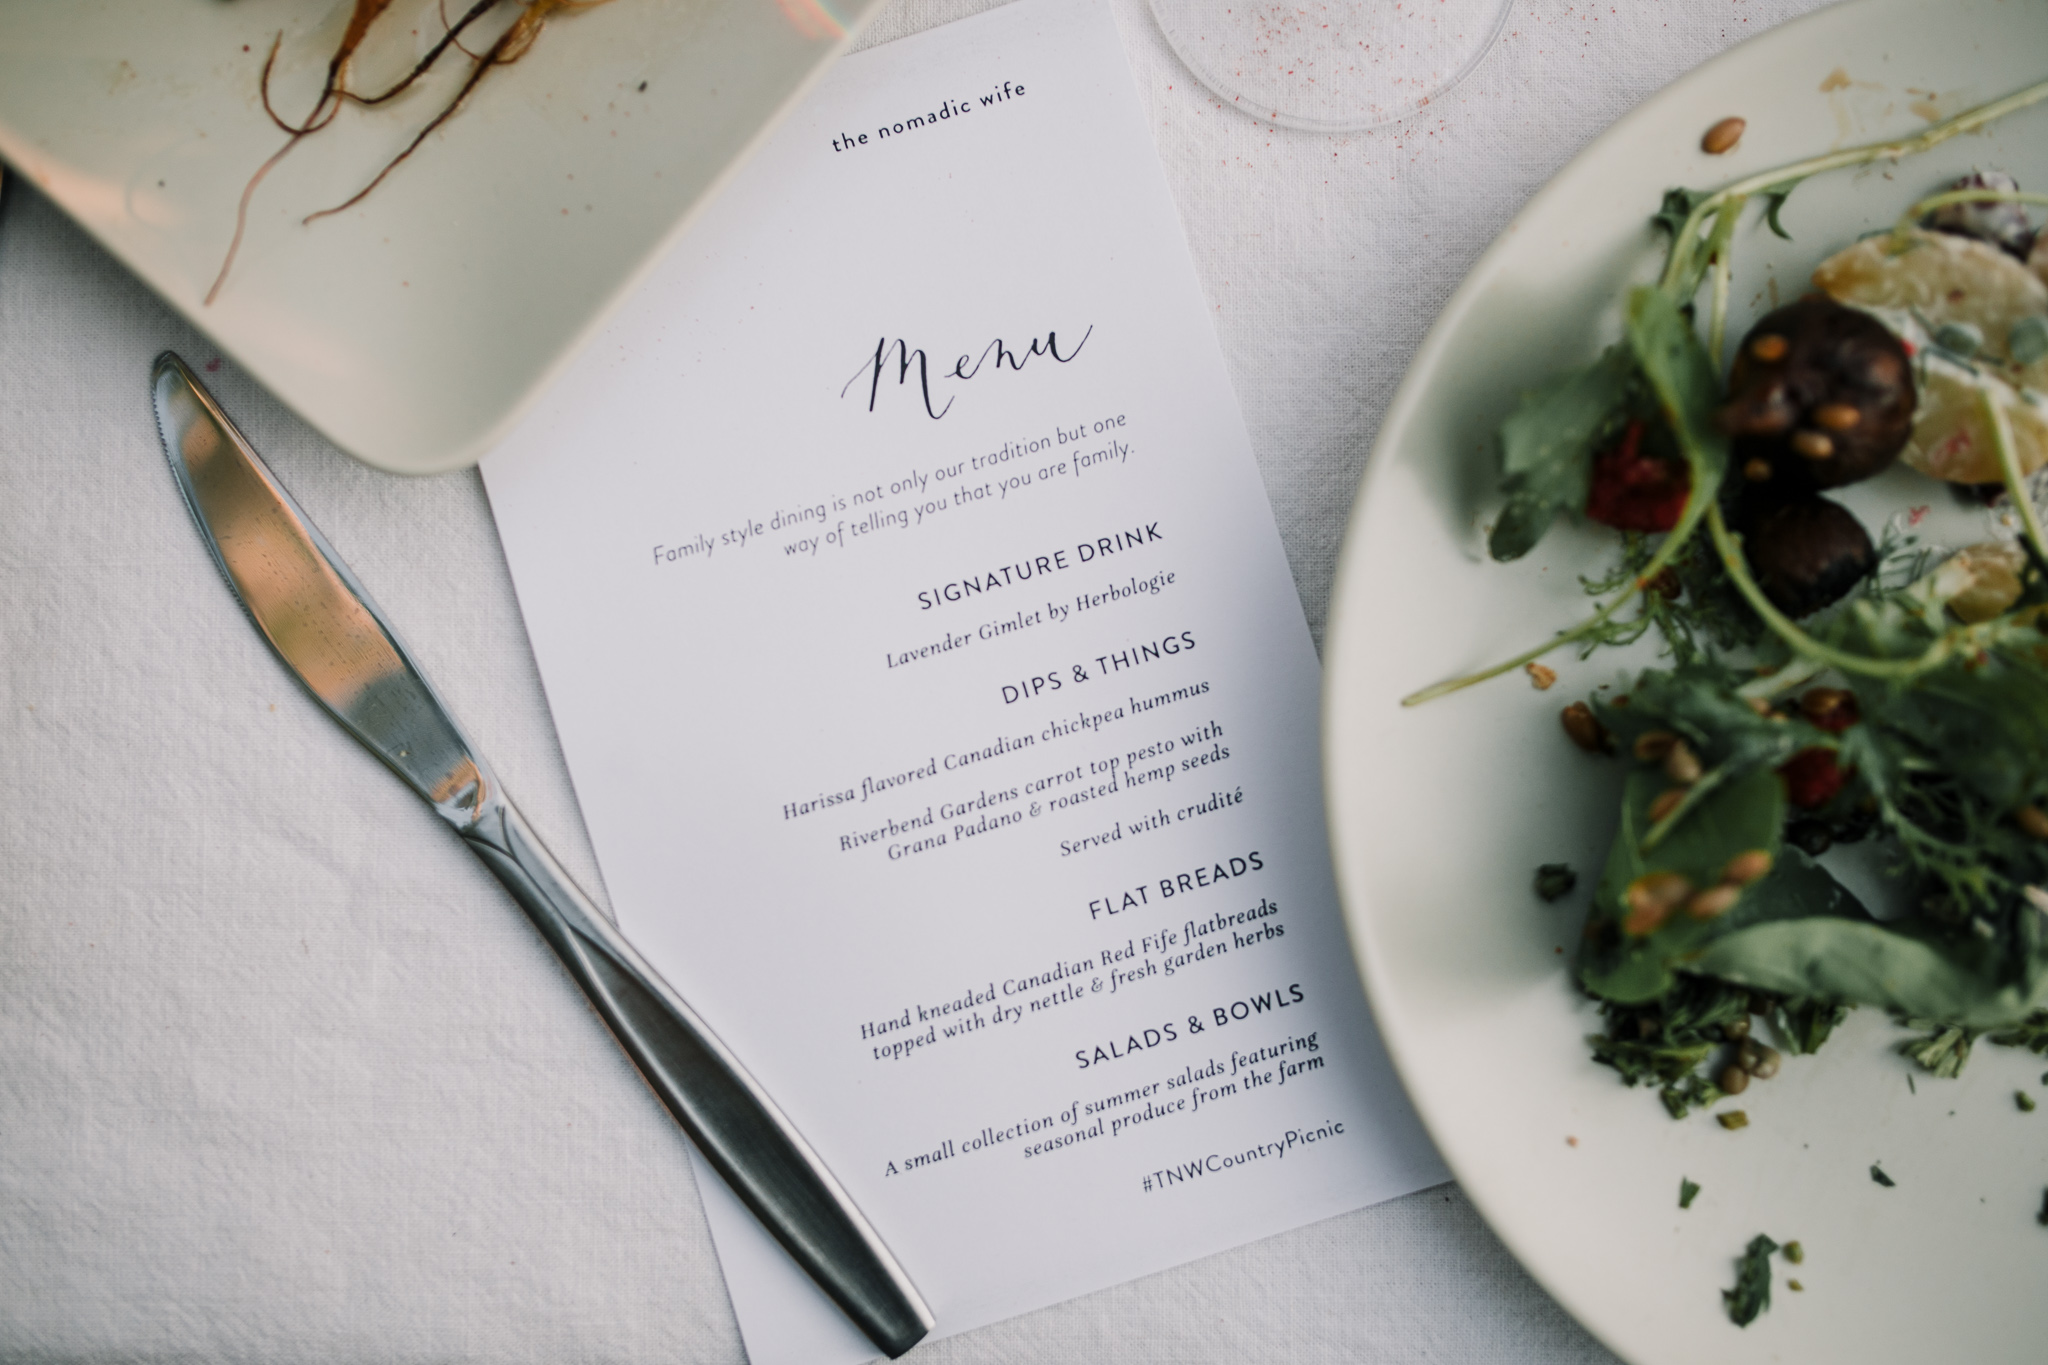 on farm dinner alberta by the nomadic wife   photography by sara jewell